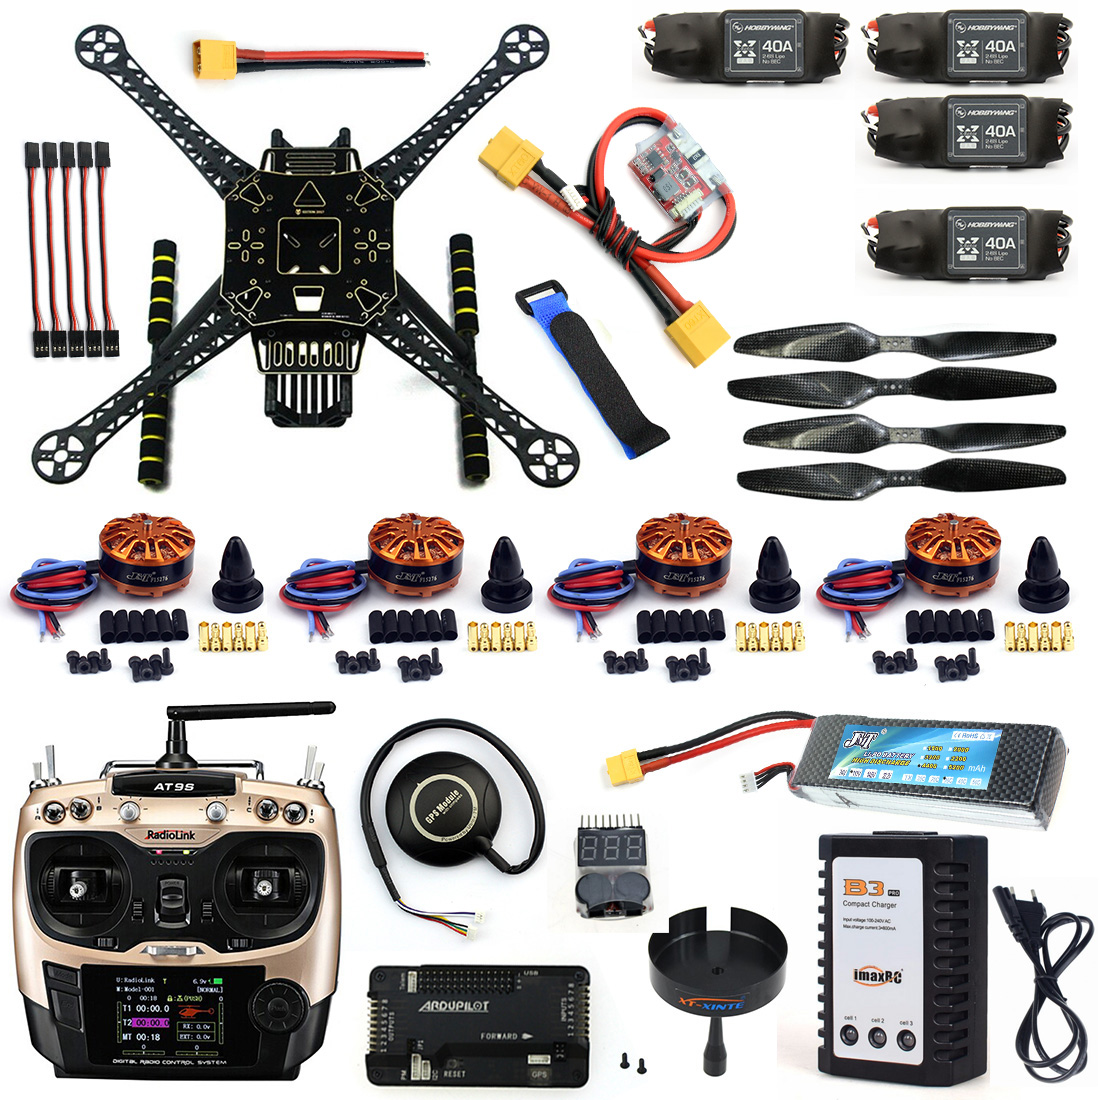 DIY Unassembled Full Quadcopter RC FPV Drone S600 Frame Kit with APM 2.8 No Compass 700KV Motor 40A ESC Battery Charger AT9S TX drone with camera rc plane qav 250 carbon frame f3 flight controller emax rs2205 2300kv motor fiber mini quadcopter